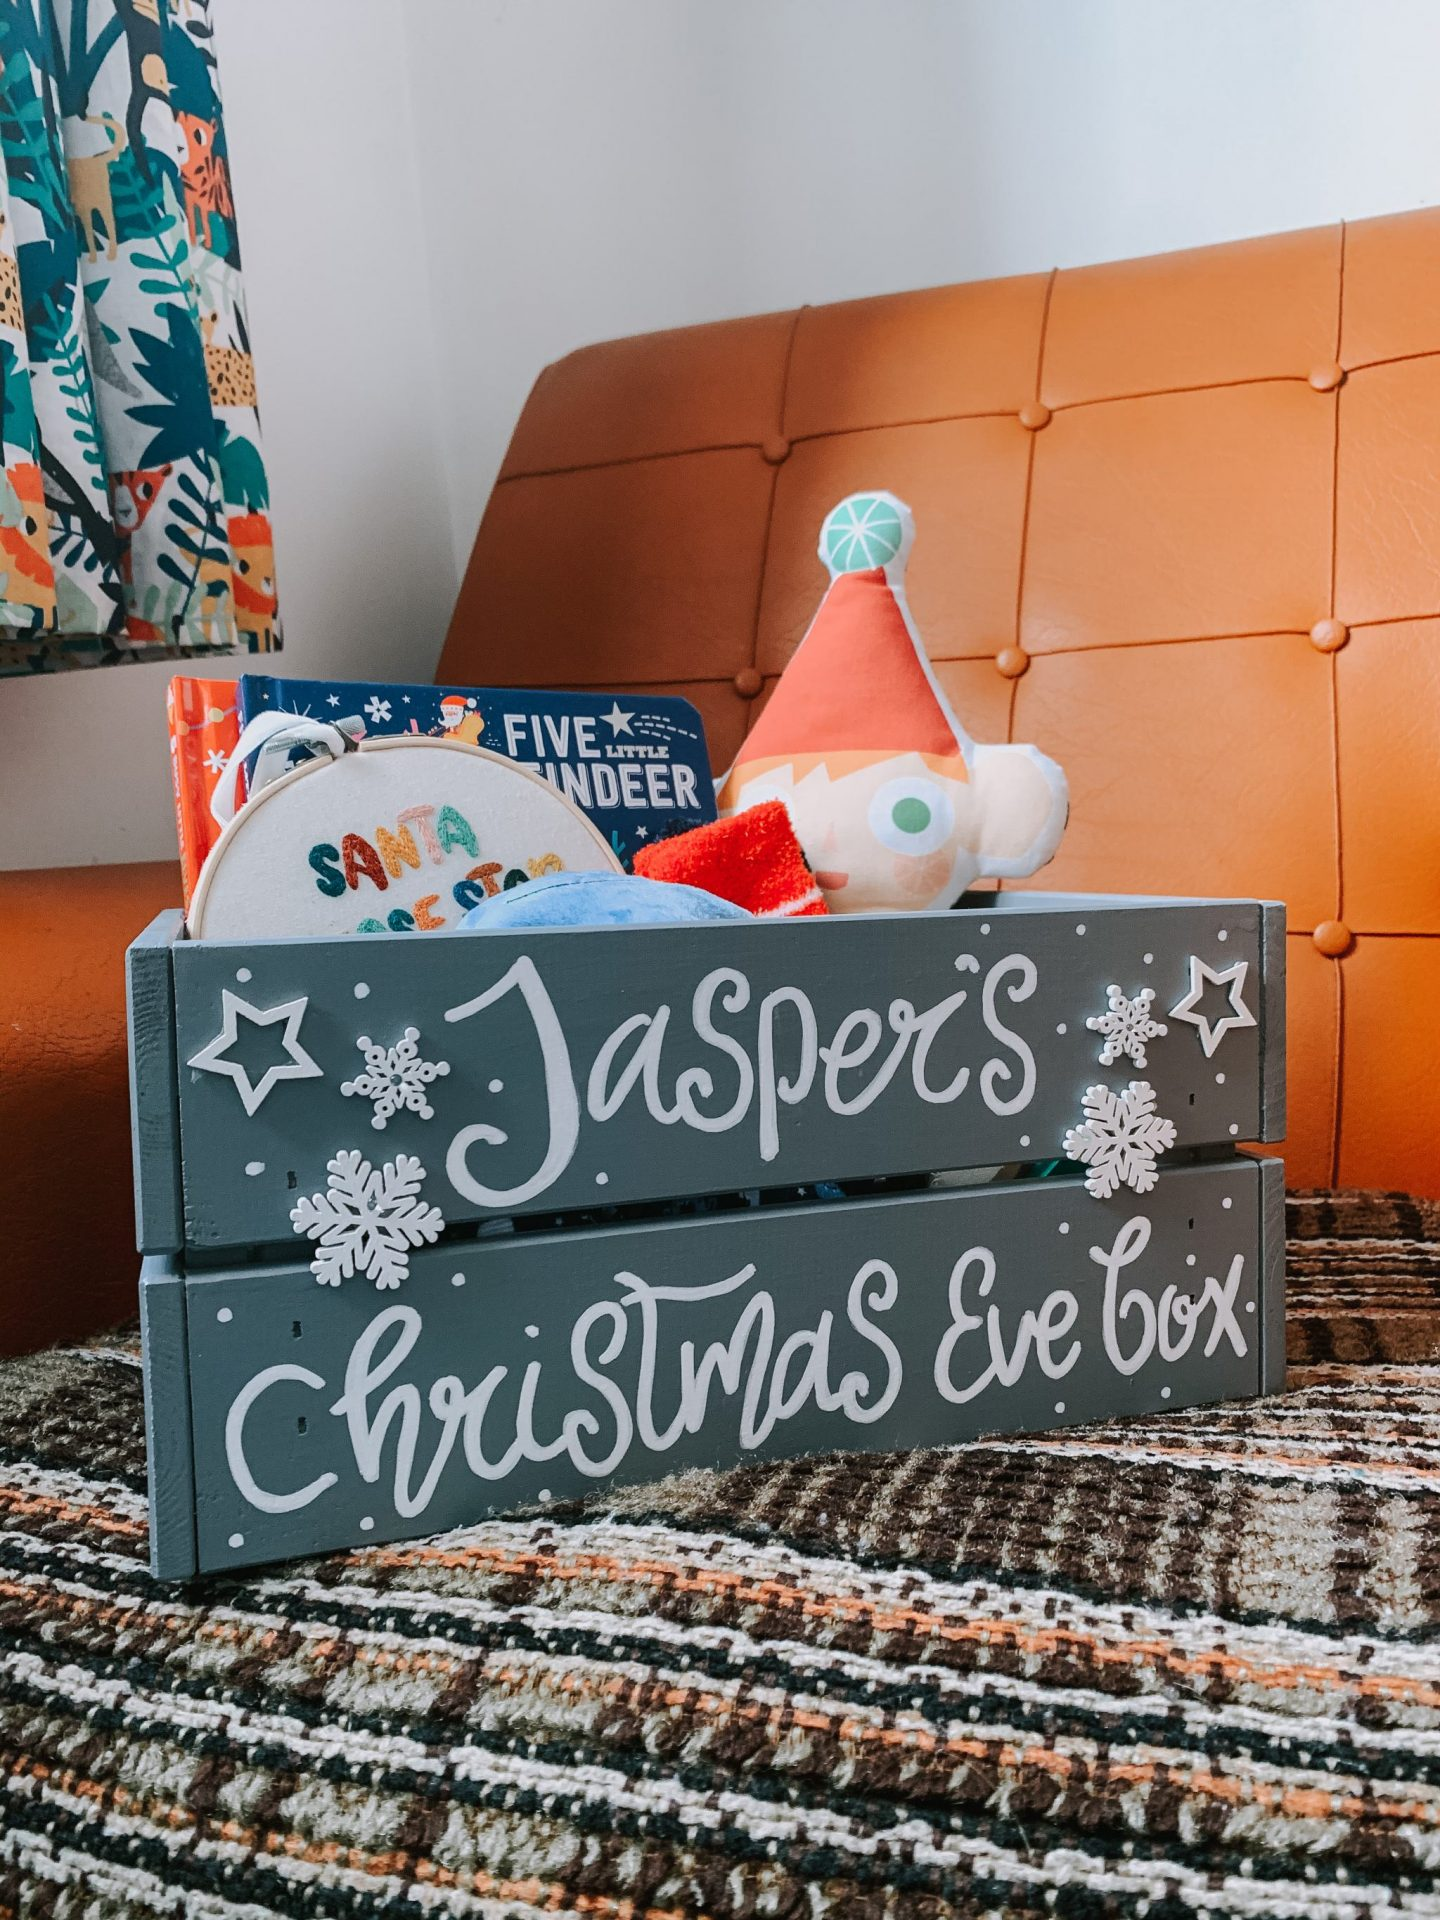 Our Christmas Eve Box For A One Year Old - full box